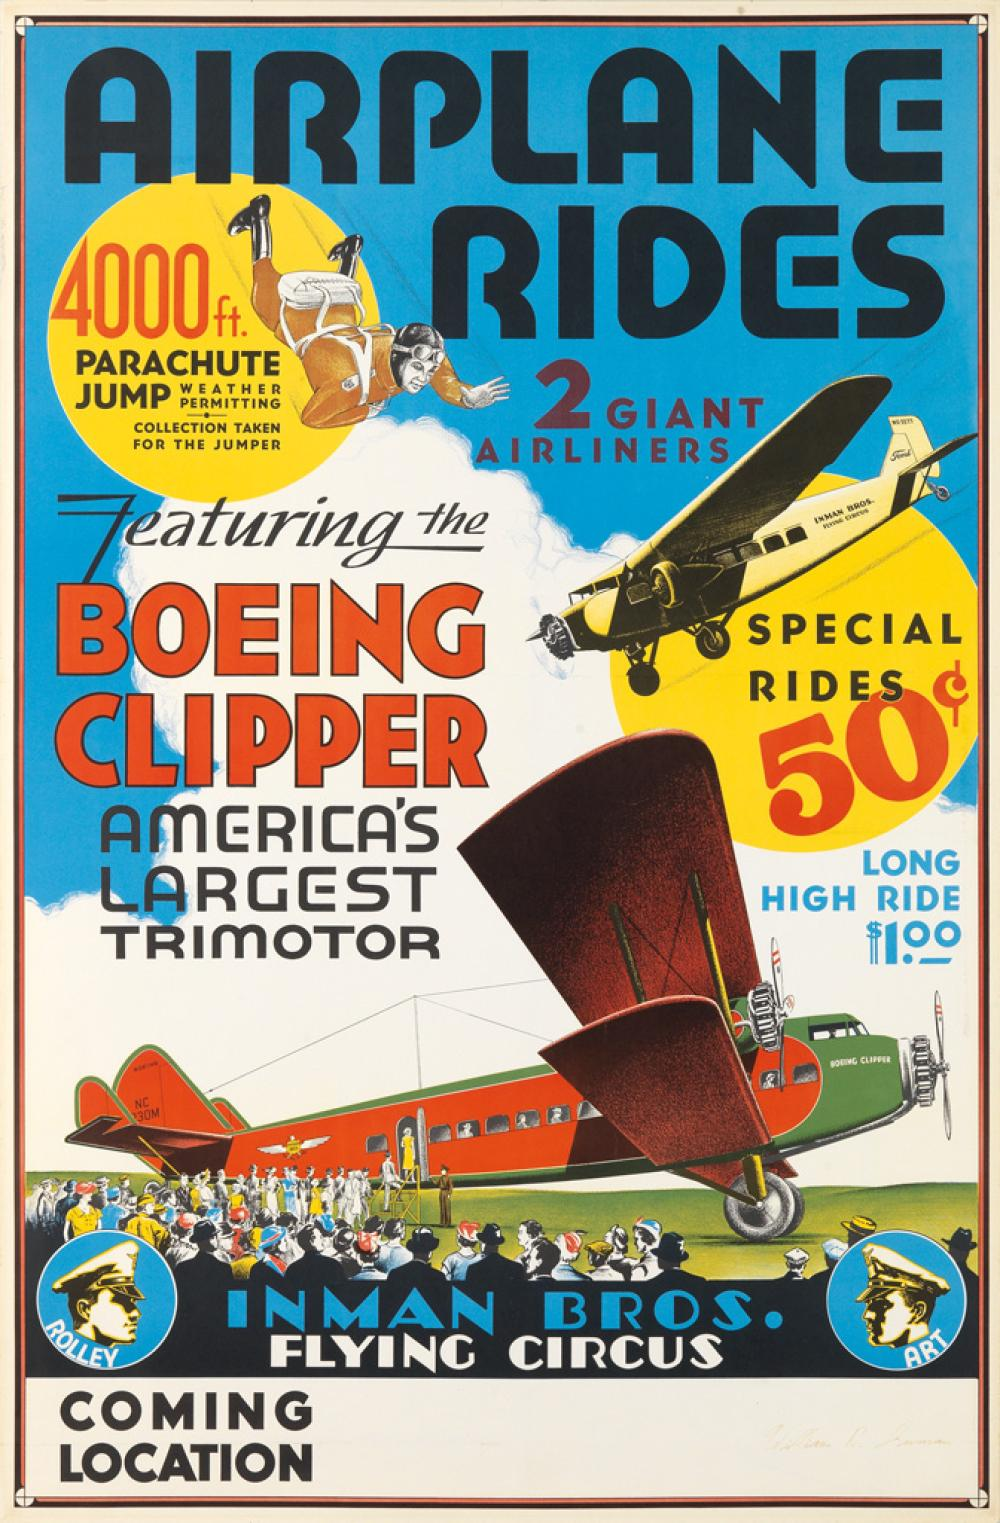 DESIGNER UNKNOWN. AIRPLANE RIDES / INMAN BROS. FLYING CIRCUS. Circa 1929. 37x24 inches, 96x63 cm.